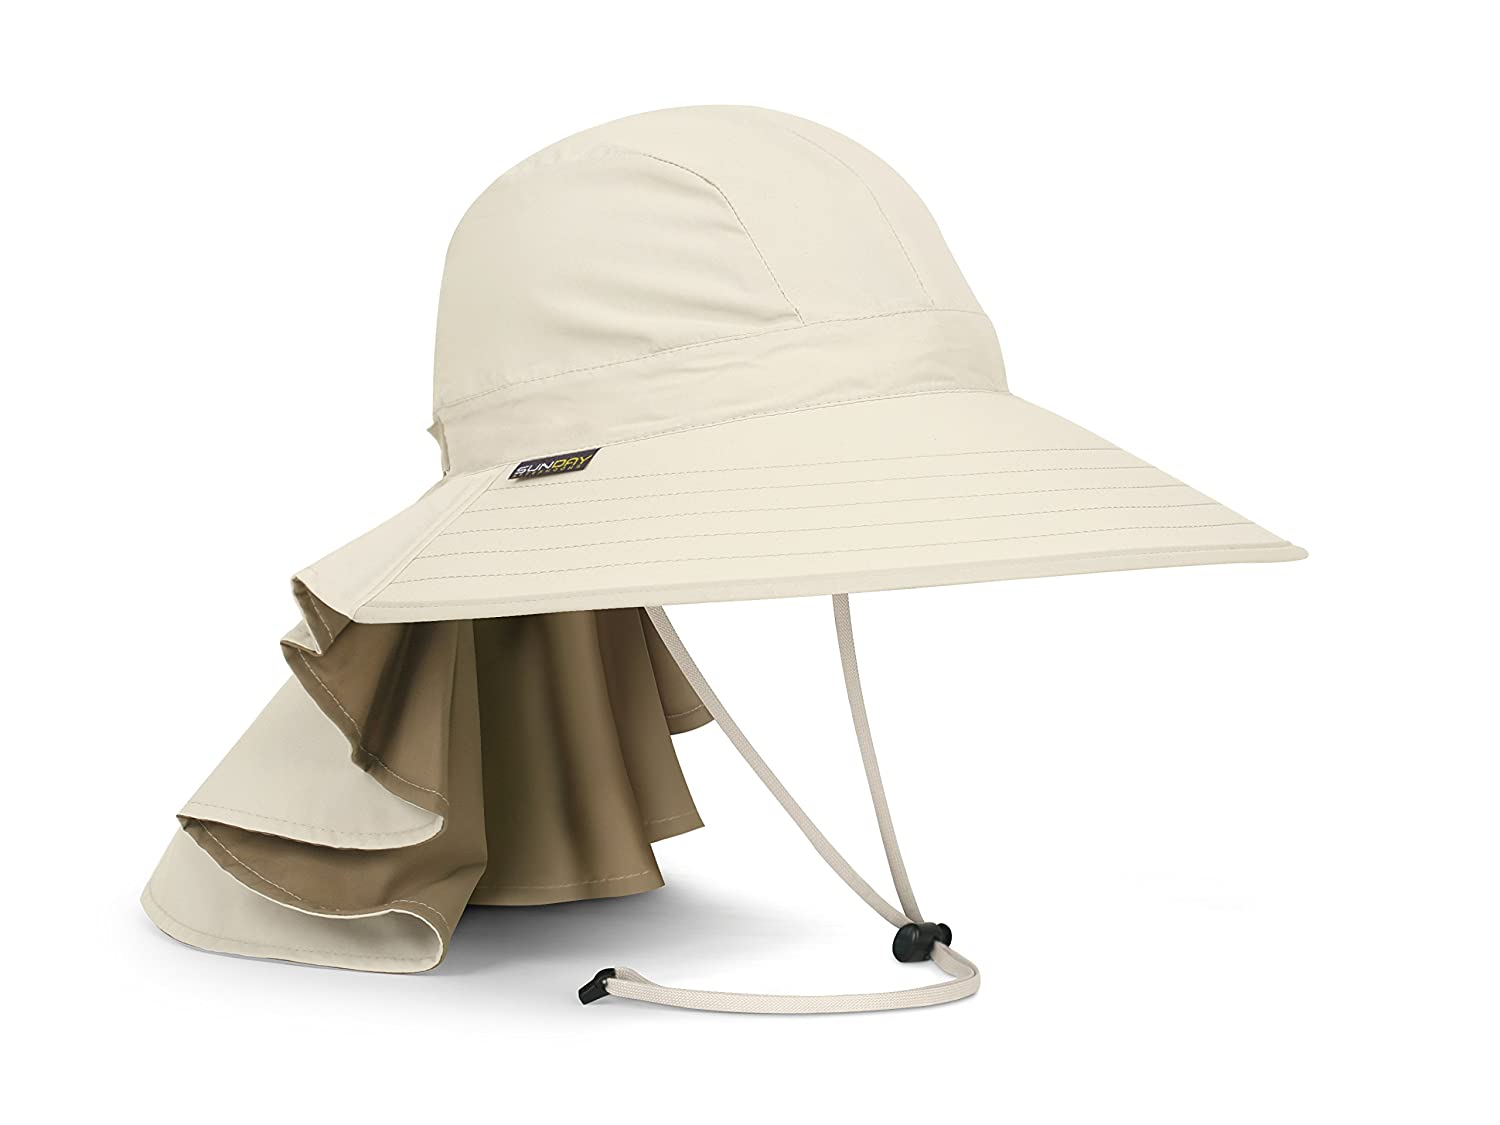 Sunday Afternoons Sundancer Hat, Cream, One Size INC S2C01077B22307